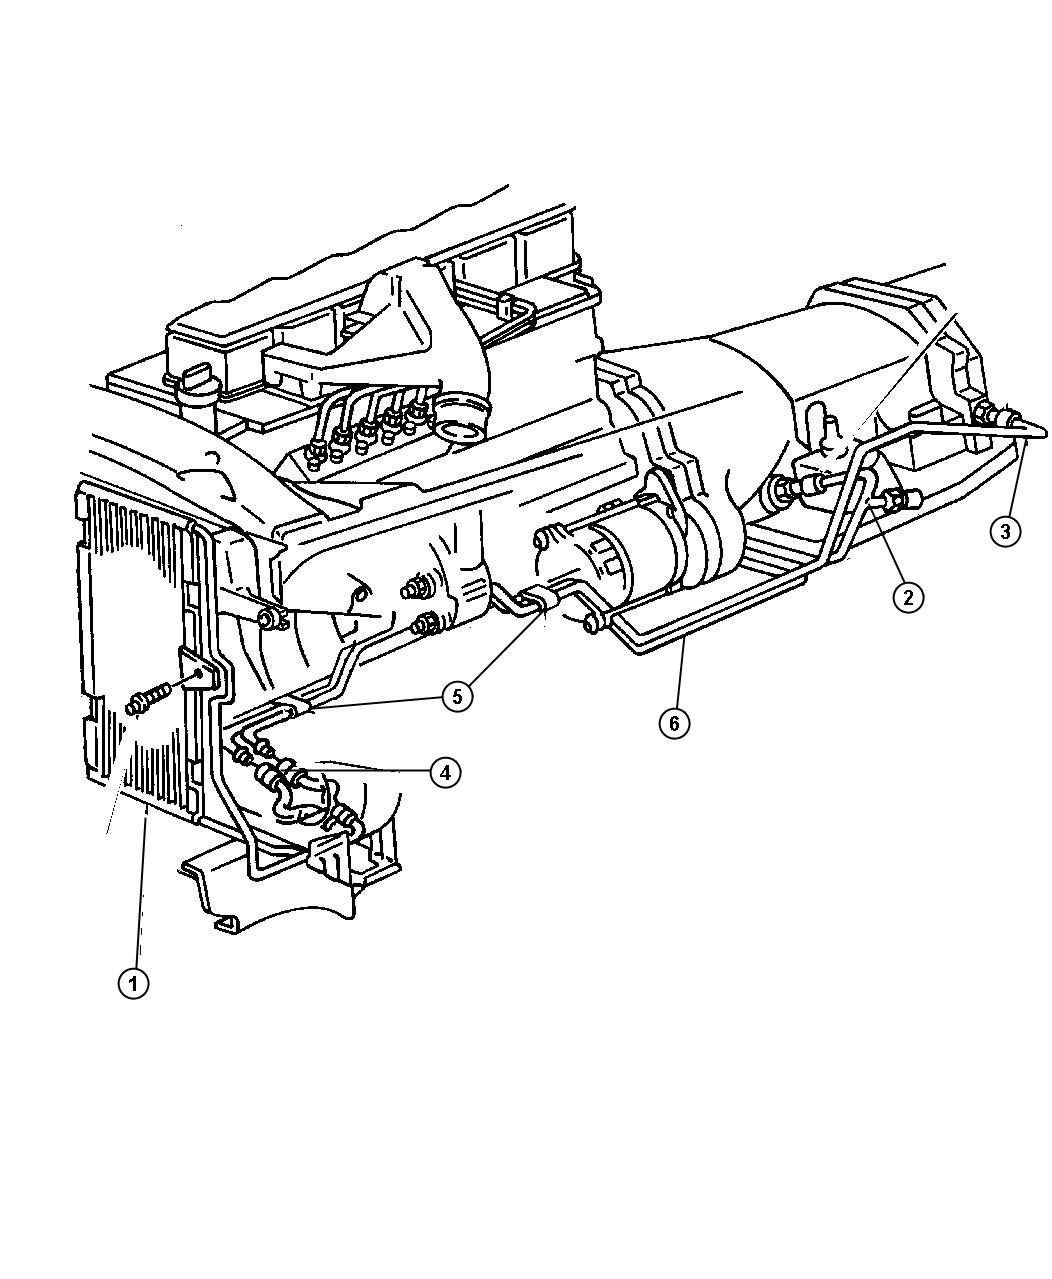 00i52608 100 [ 2003 dodge ram 1500 maintenance manual ] mdii wiring dodge ram 1500 transmission cooler diagram at webbmarketing.co